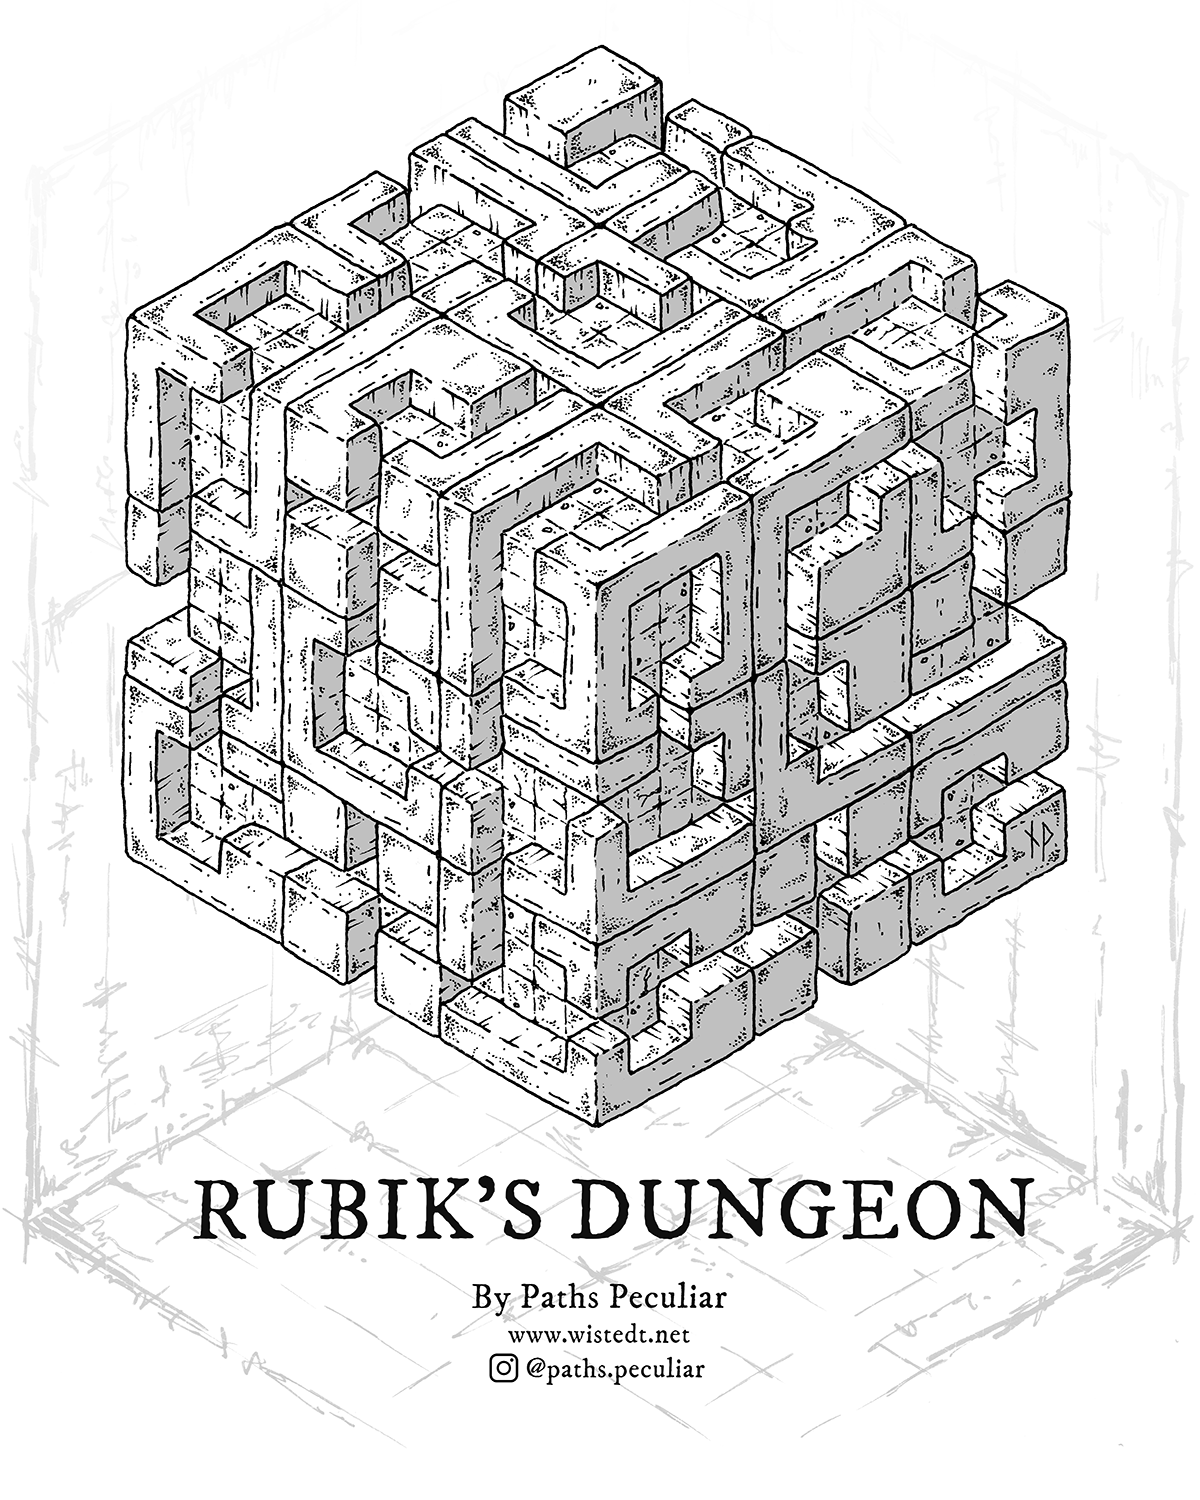 Rubik's Dungeon – a cube shaped, isometric dungeon map